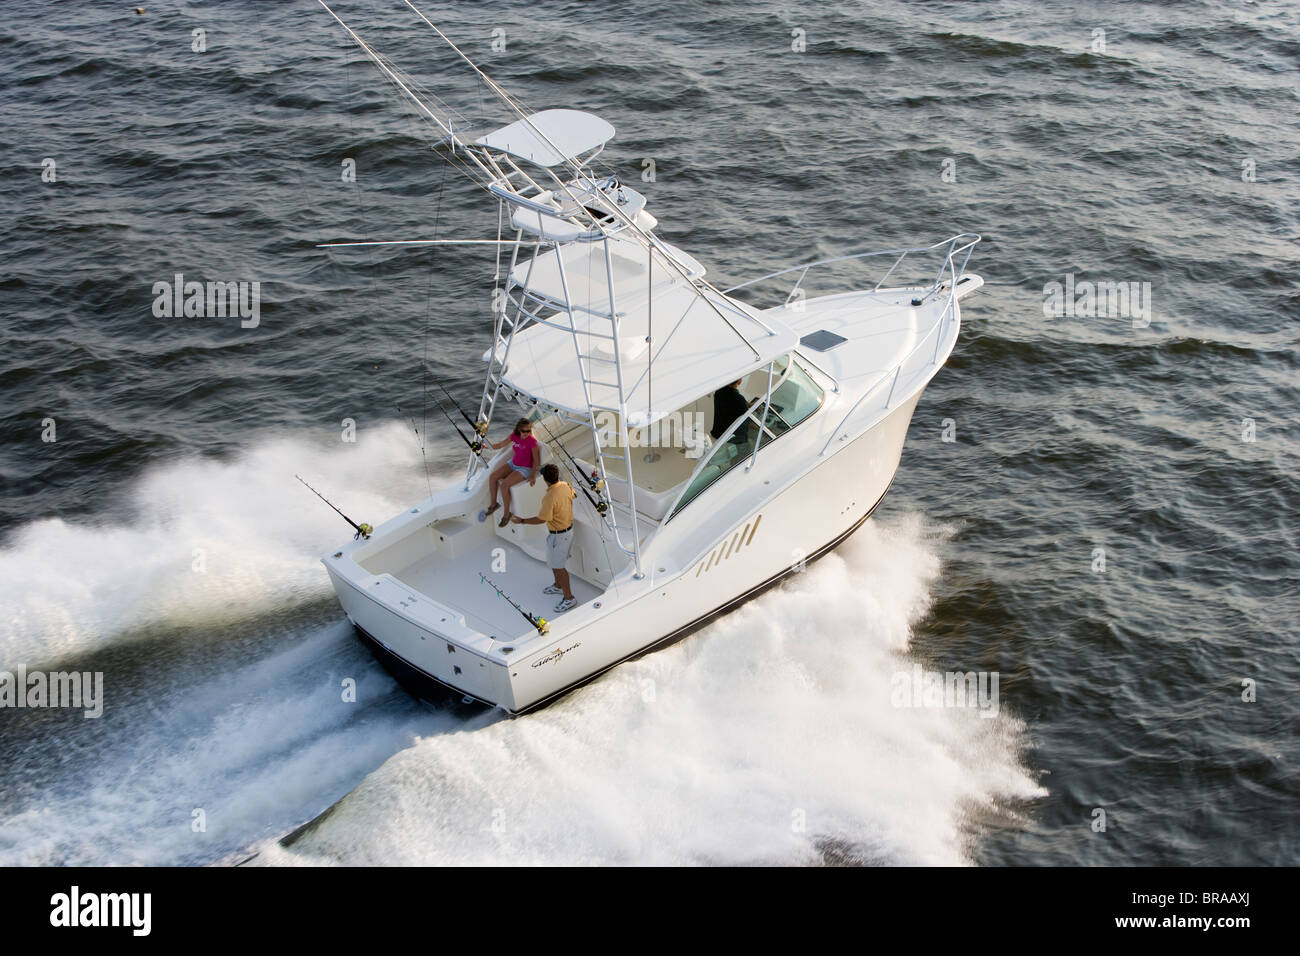 Couple on the aftdeck of a sportsfisher.  Model and property released. - Stock Image